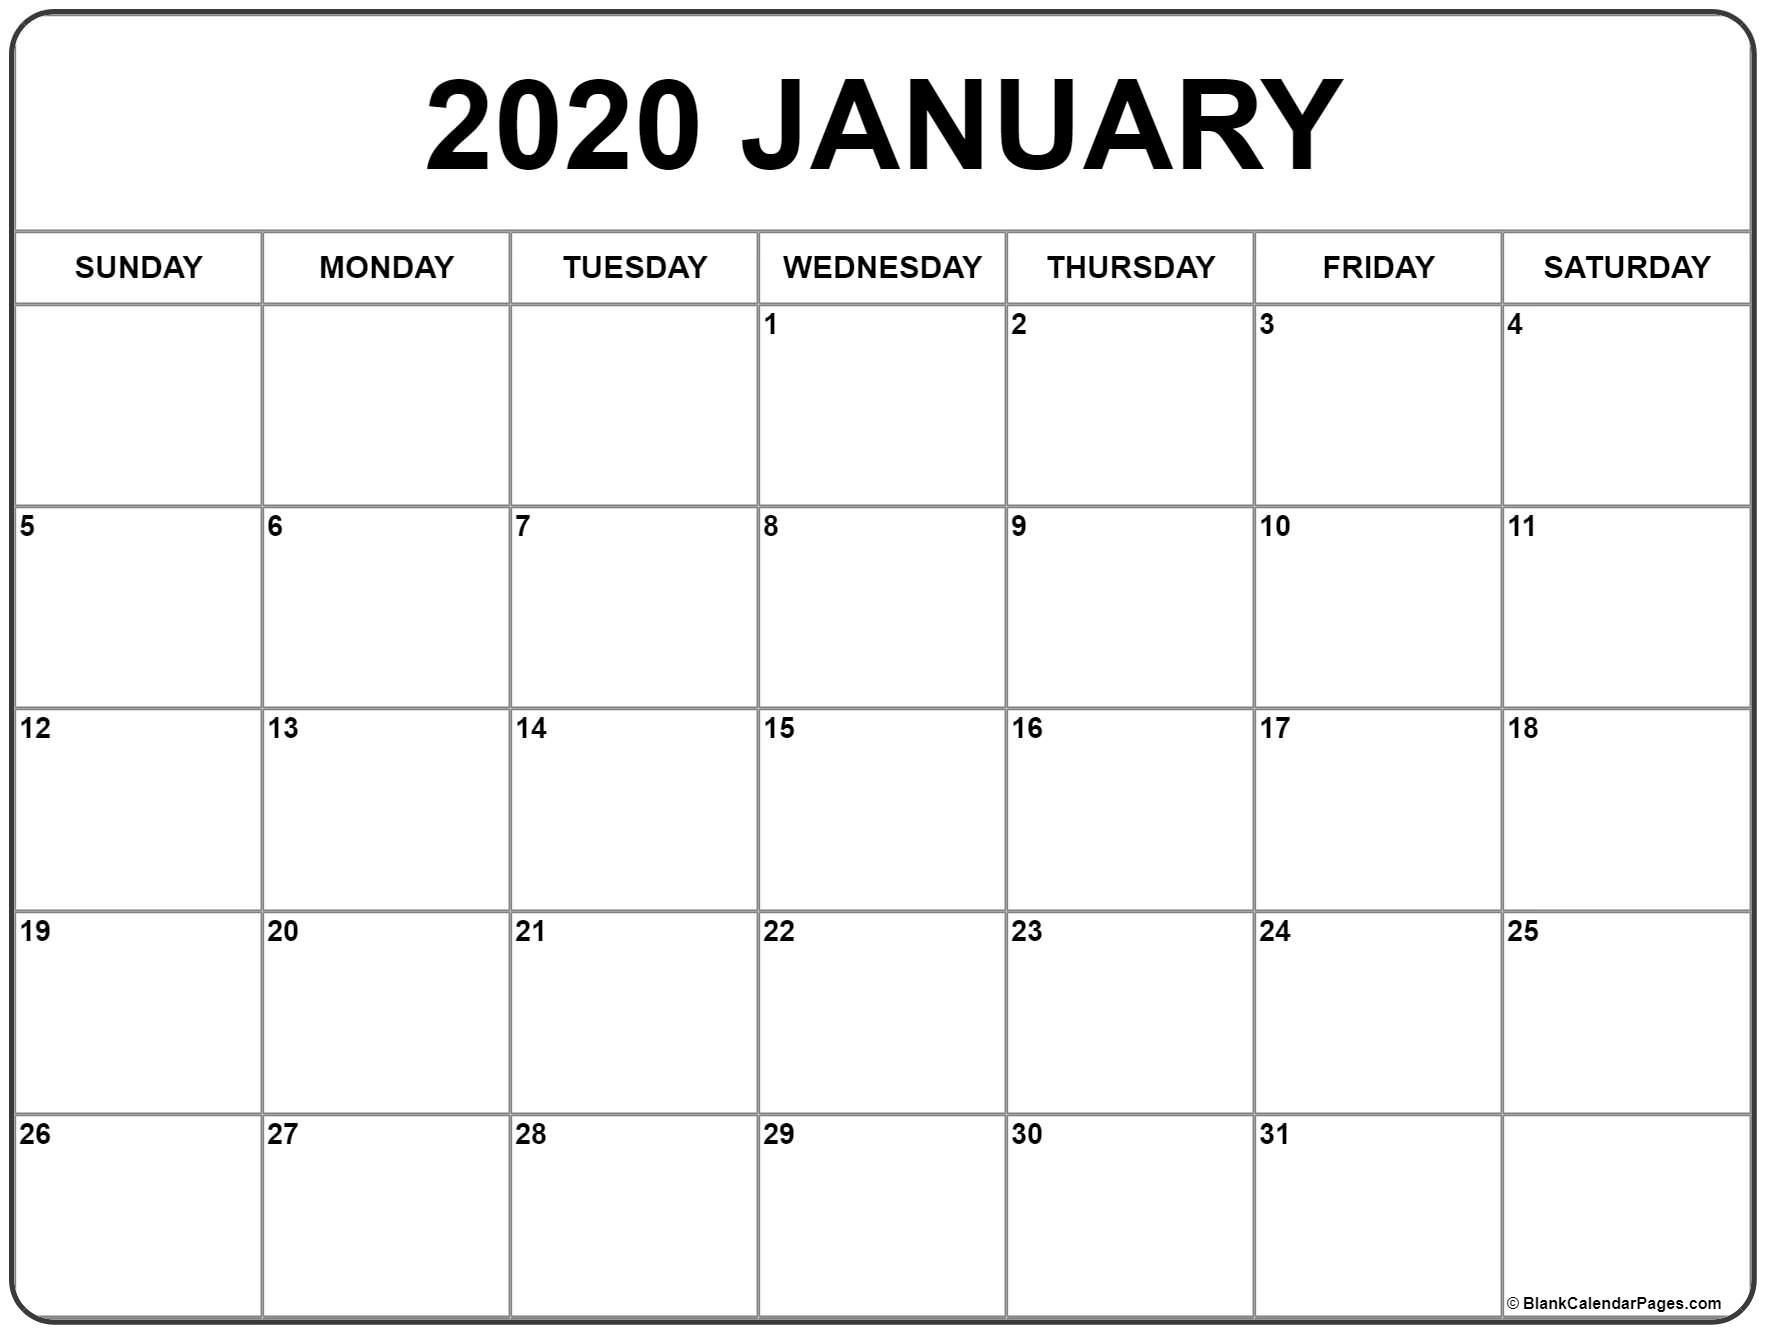 January 2020 Calendar | Free Printable Monthly Calendars  Where I Print A Full Page Monthly Calendar For 2020